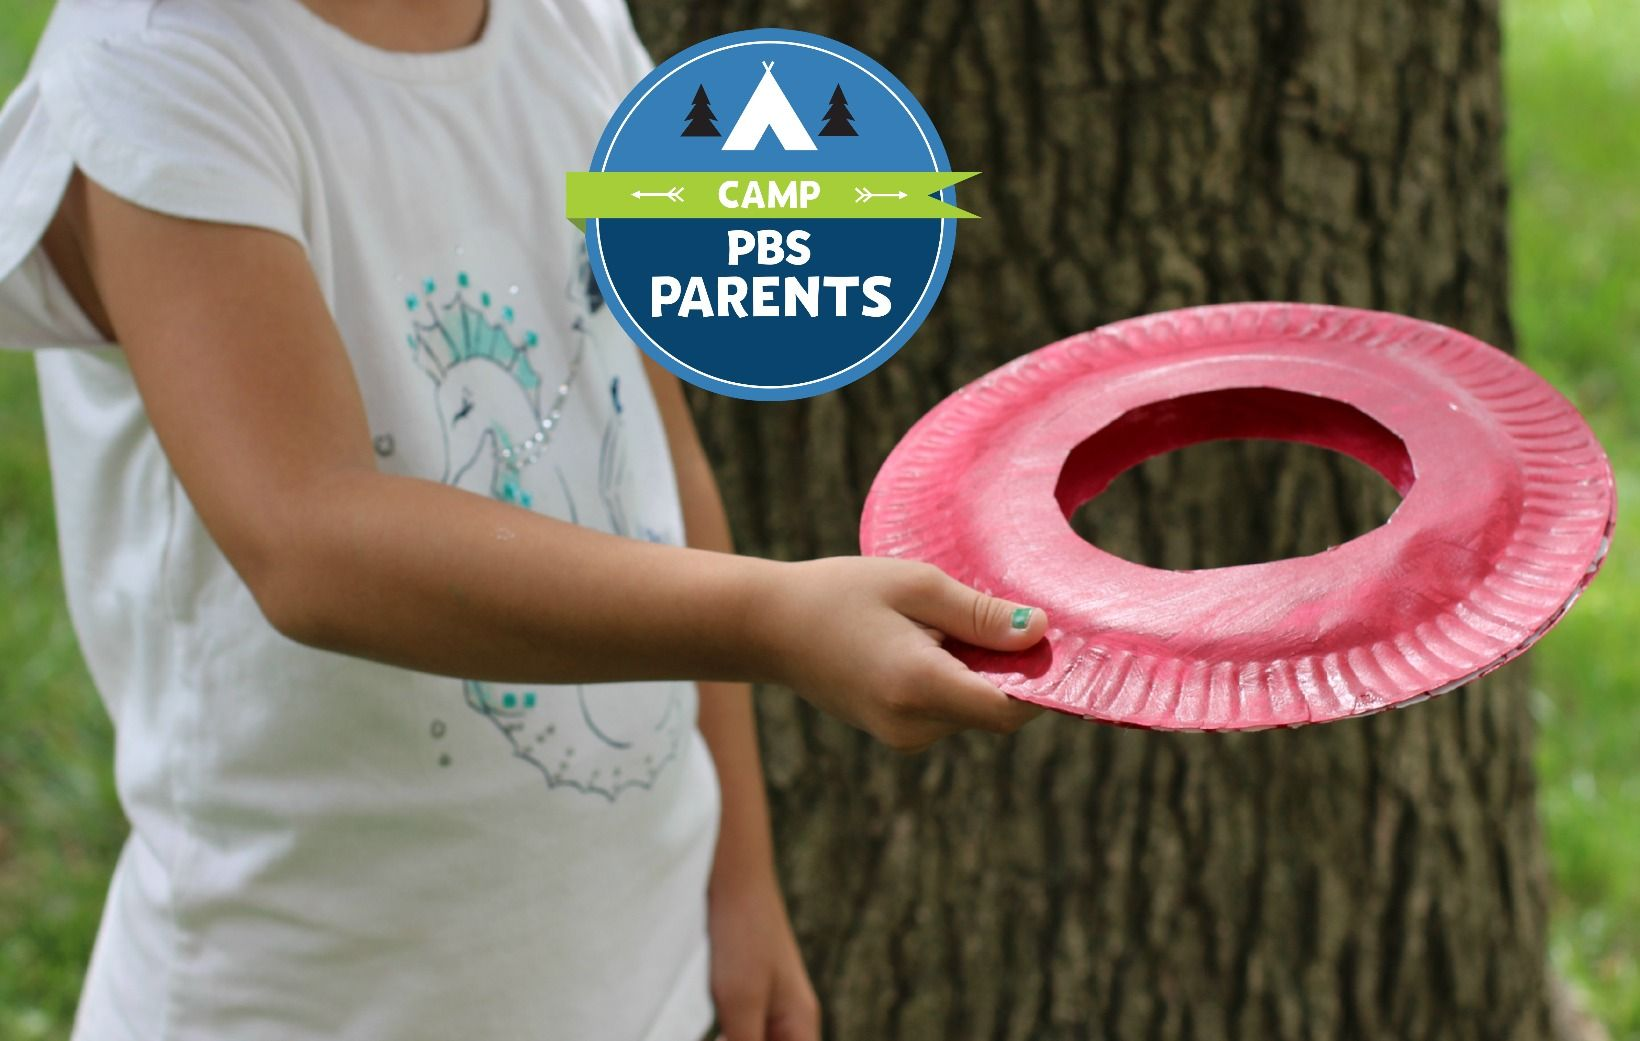 Contact paper for crafts cheap diy marble contact paper crafts paper plate flying disc video crafts for kids pbs parents with contact paper for crafts jeuxipadfo Image collections